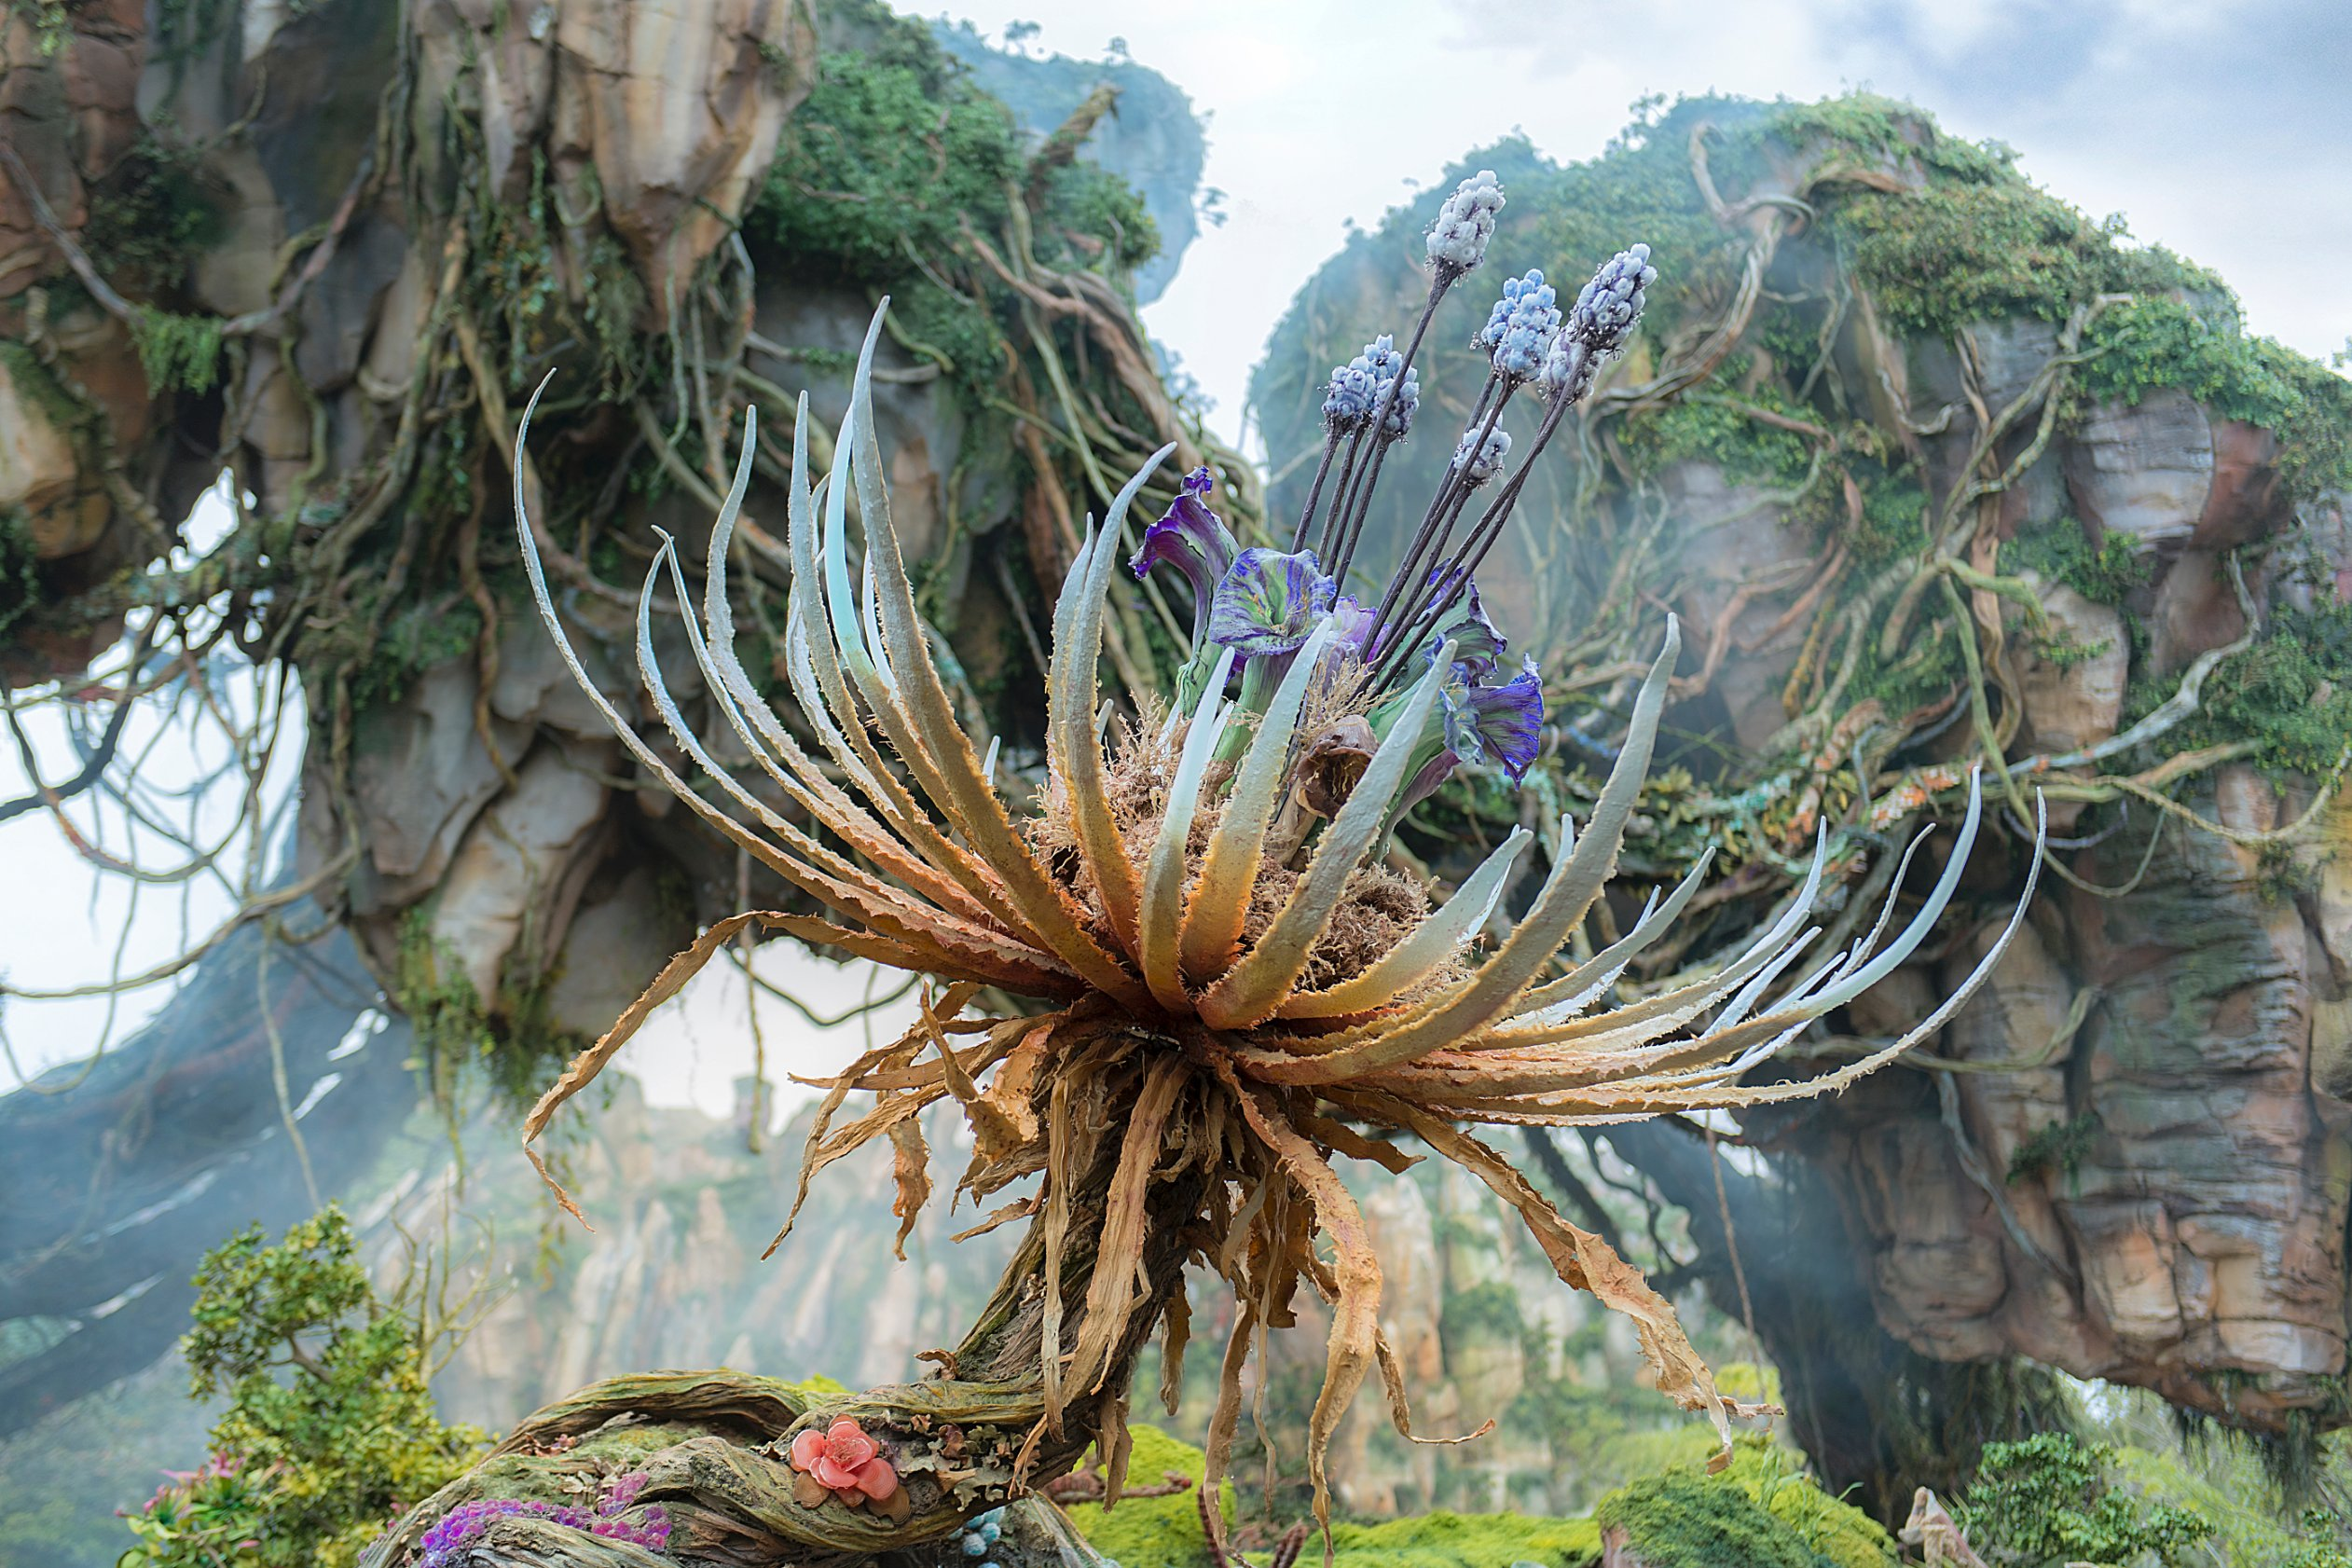 First Look Inside Disneys Avatar World Of Pandora